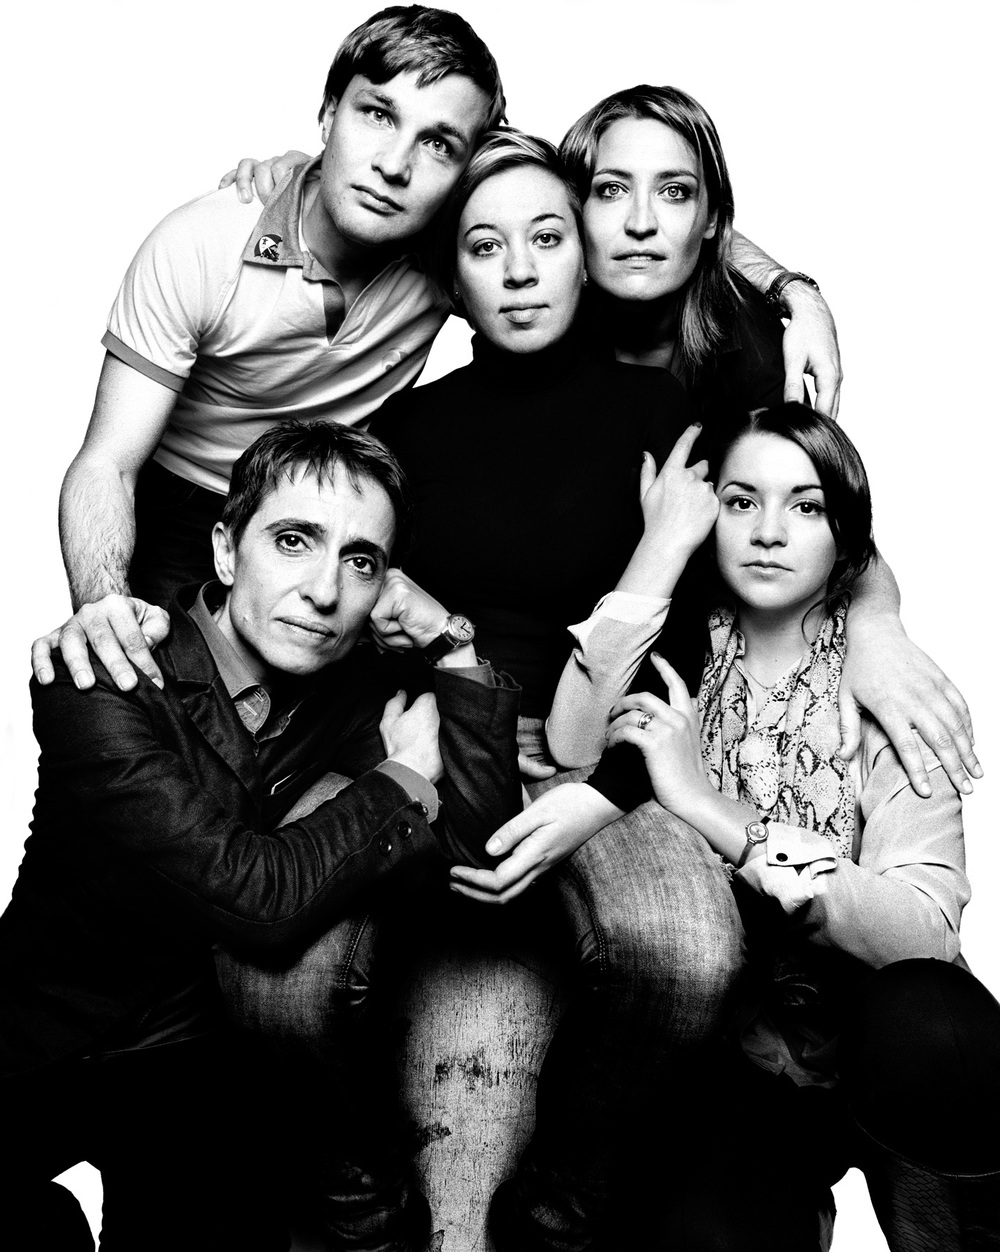 "[clockwise from top left] Konstantin Yablotskiy, Maria Kozlovskaya, Elvina Yuvakaeva, Anastasia Smirnova and Masha Gessen are leaders in the fight against Russia's anti-gay ""propaganda"" law and policies, despite constant threats against them."